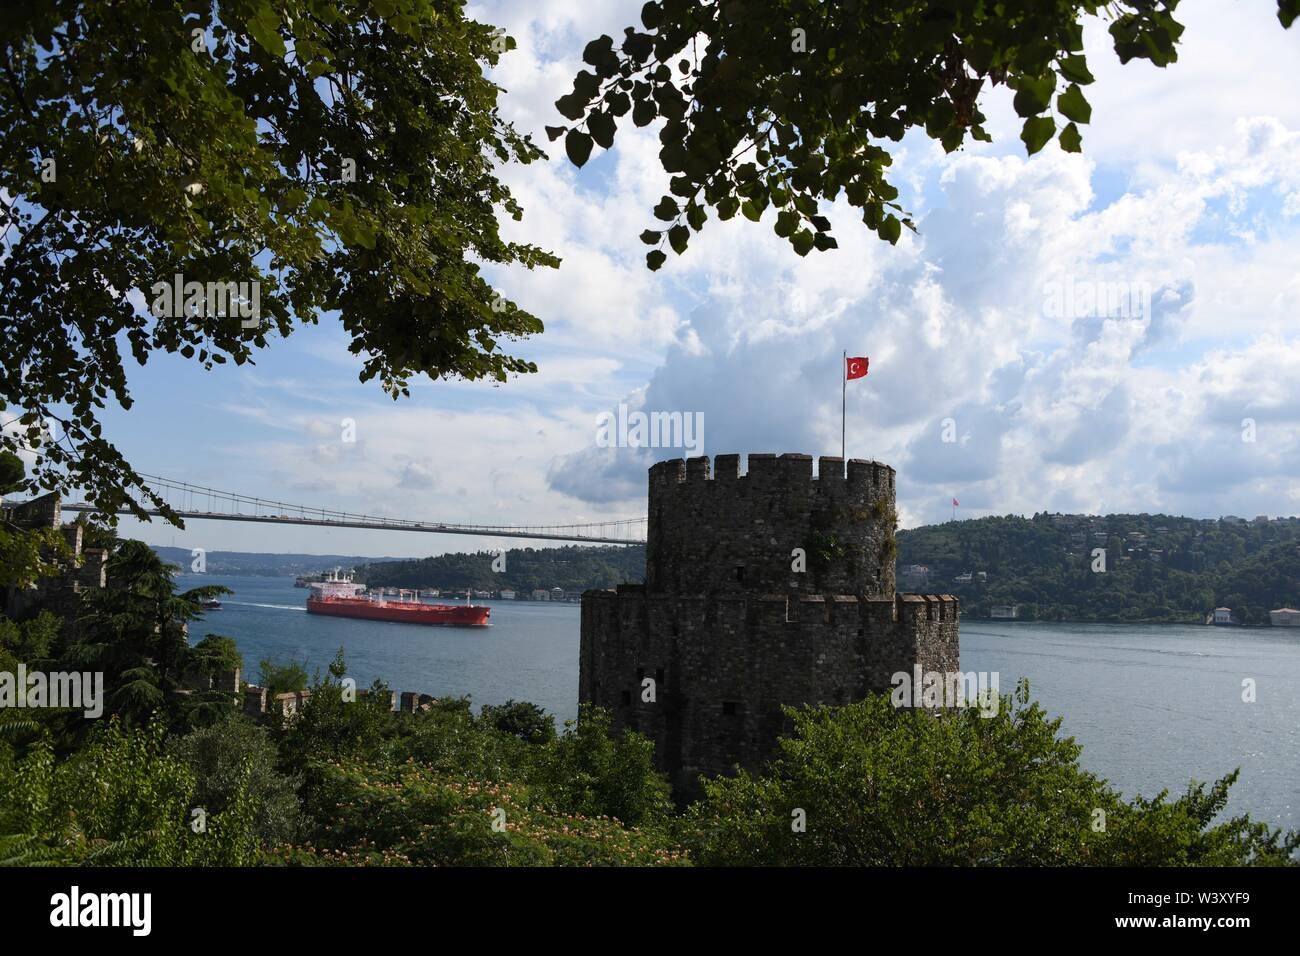 Istanbul. 18th July, 2019. Photo taken on July 18, 2019 shows a scenery of the Rumeli Fortress in Istanbul, Turkey. Turkey's biggest city Istanbul allured a record number of tourists during the first five months of this year, thanks to an environment of peace, affordable prices and diversified tourism products. Between January and May, 5.4 million foreigners visited Istanbul, marking a year-on-year increase of 11 percent, according to the data unveiled by the Istanbul Provincial Directorate of Culture and Tourism. Credit: Xu Suhui/Xinhua/Alamy Live News - Stock Image